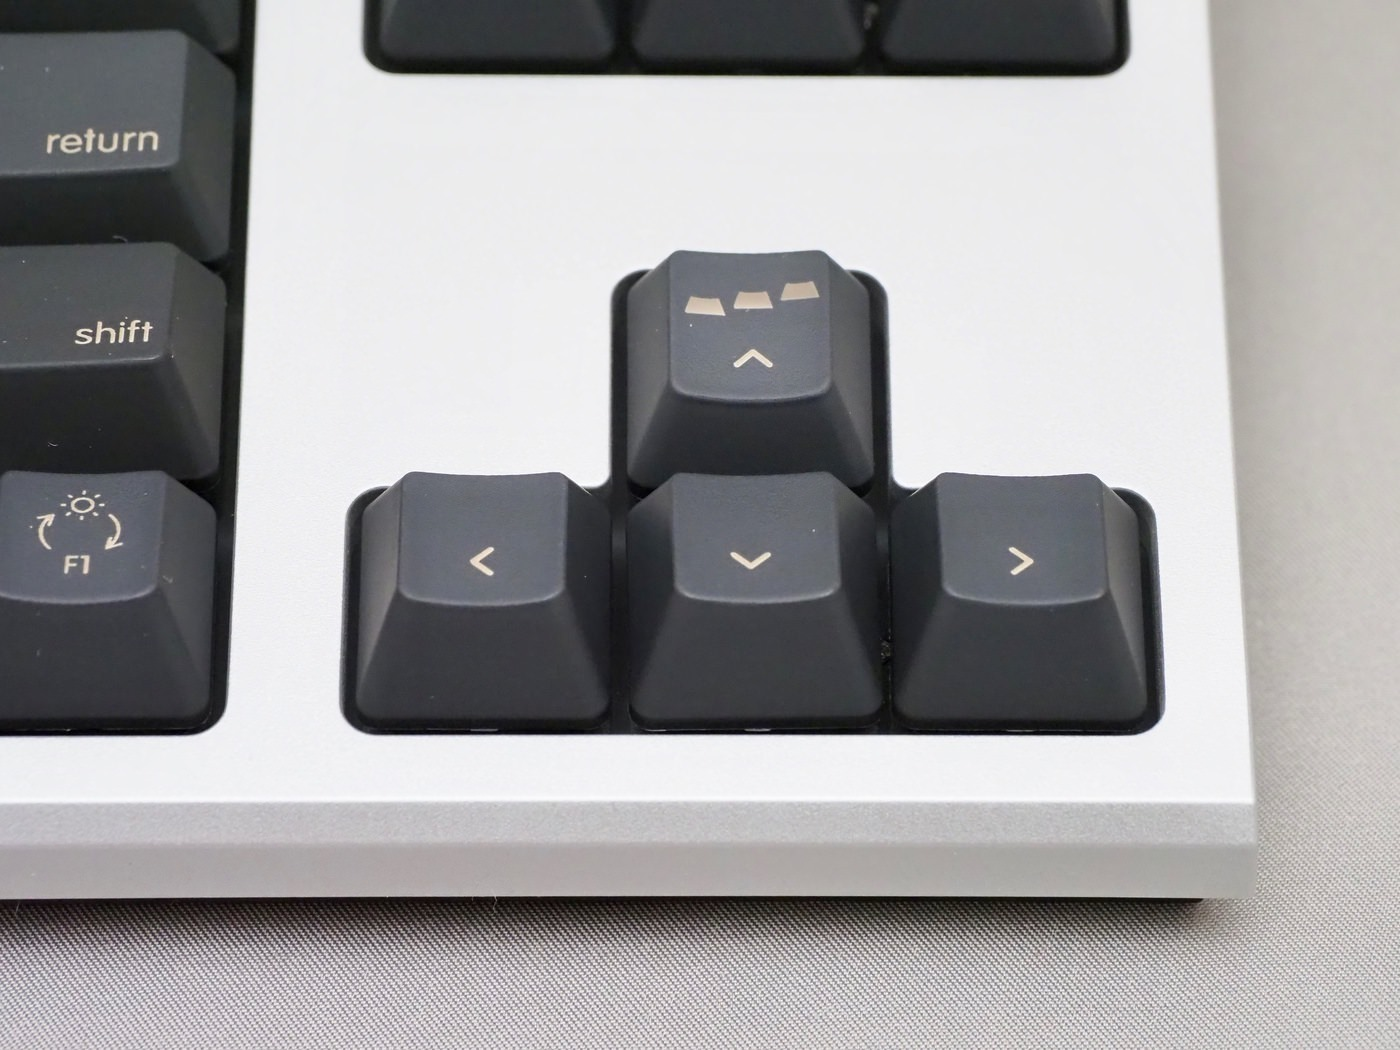 realforce-tkl-for-mac-pfu-limited-edition-review_00024